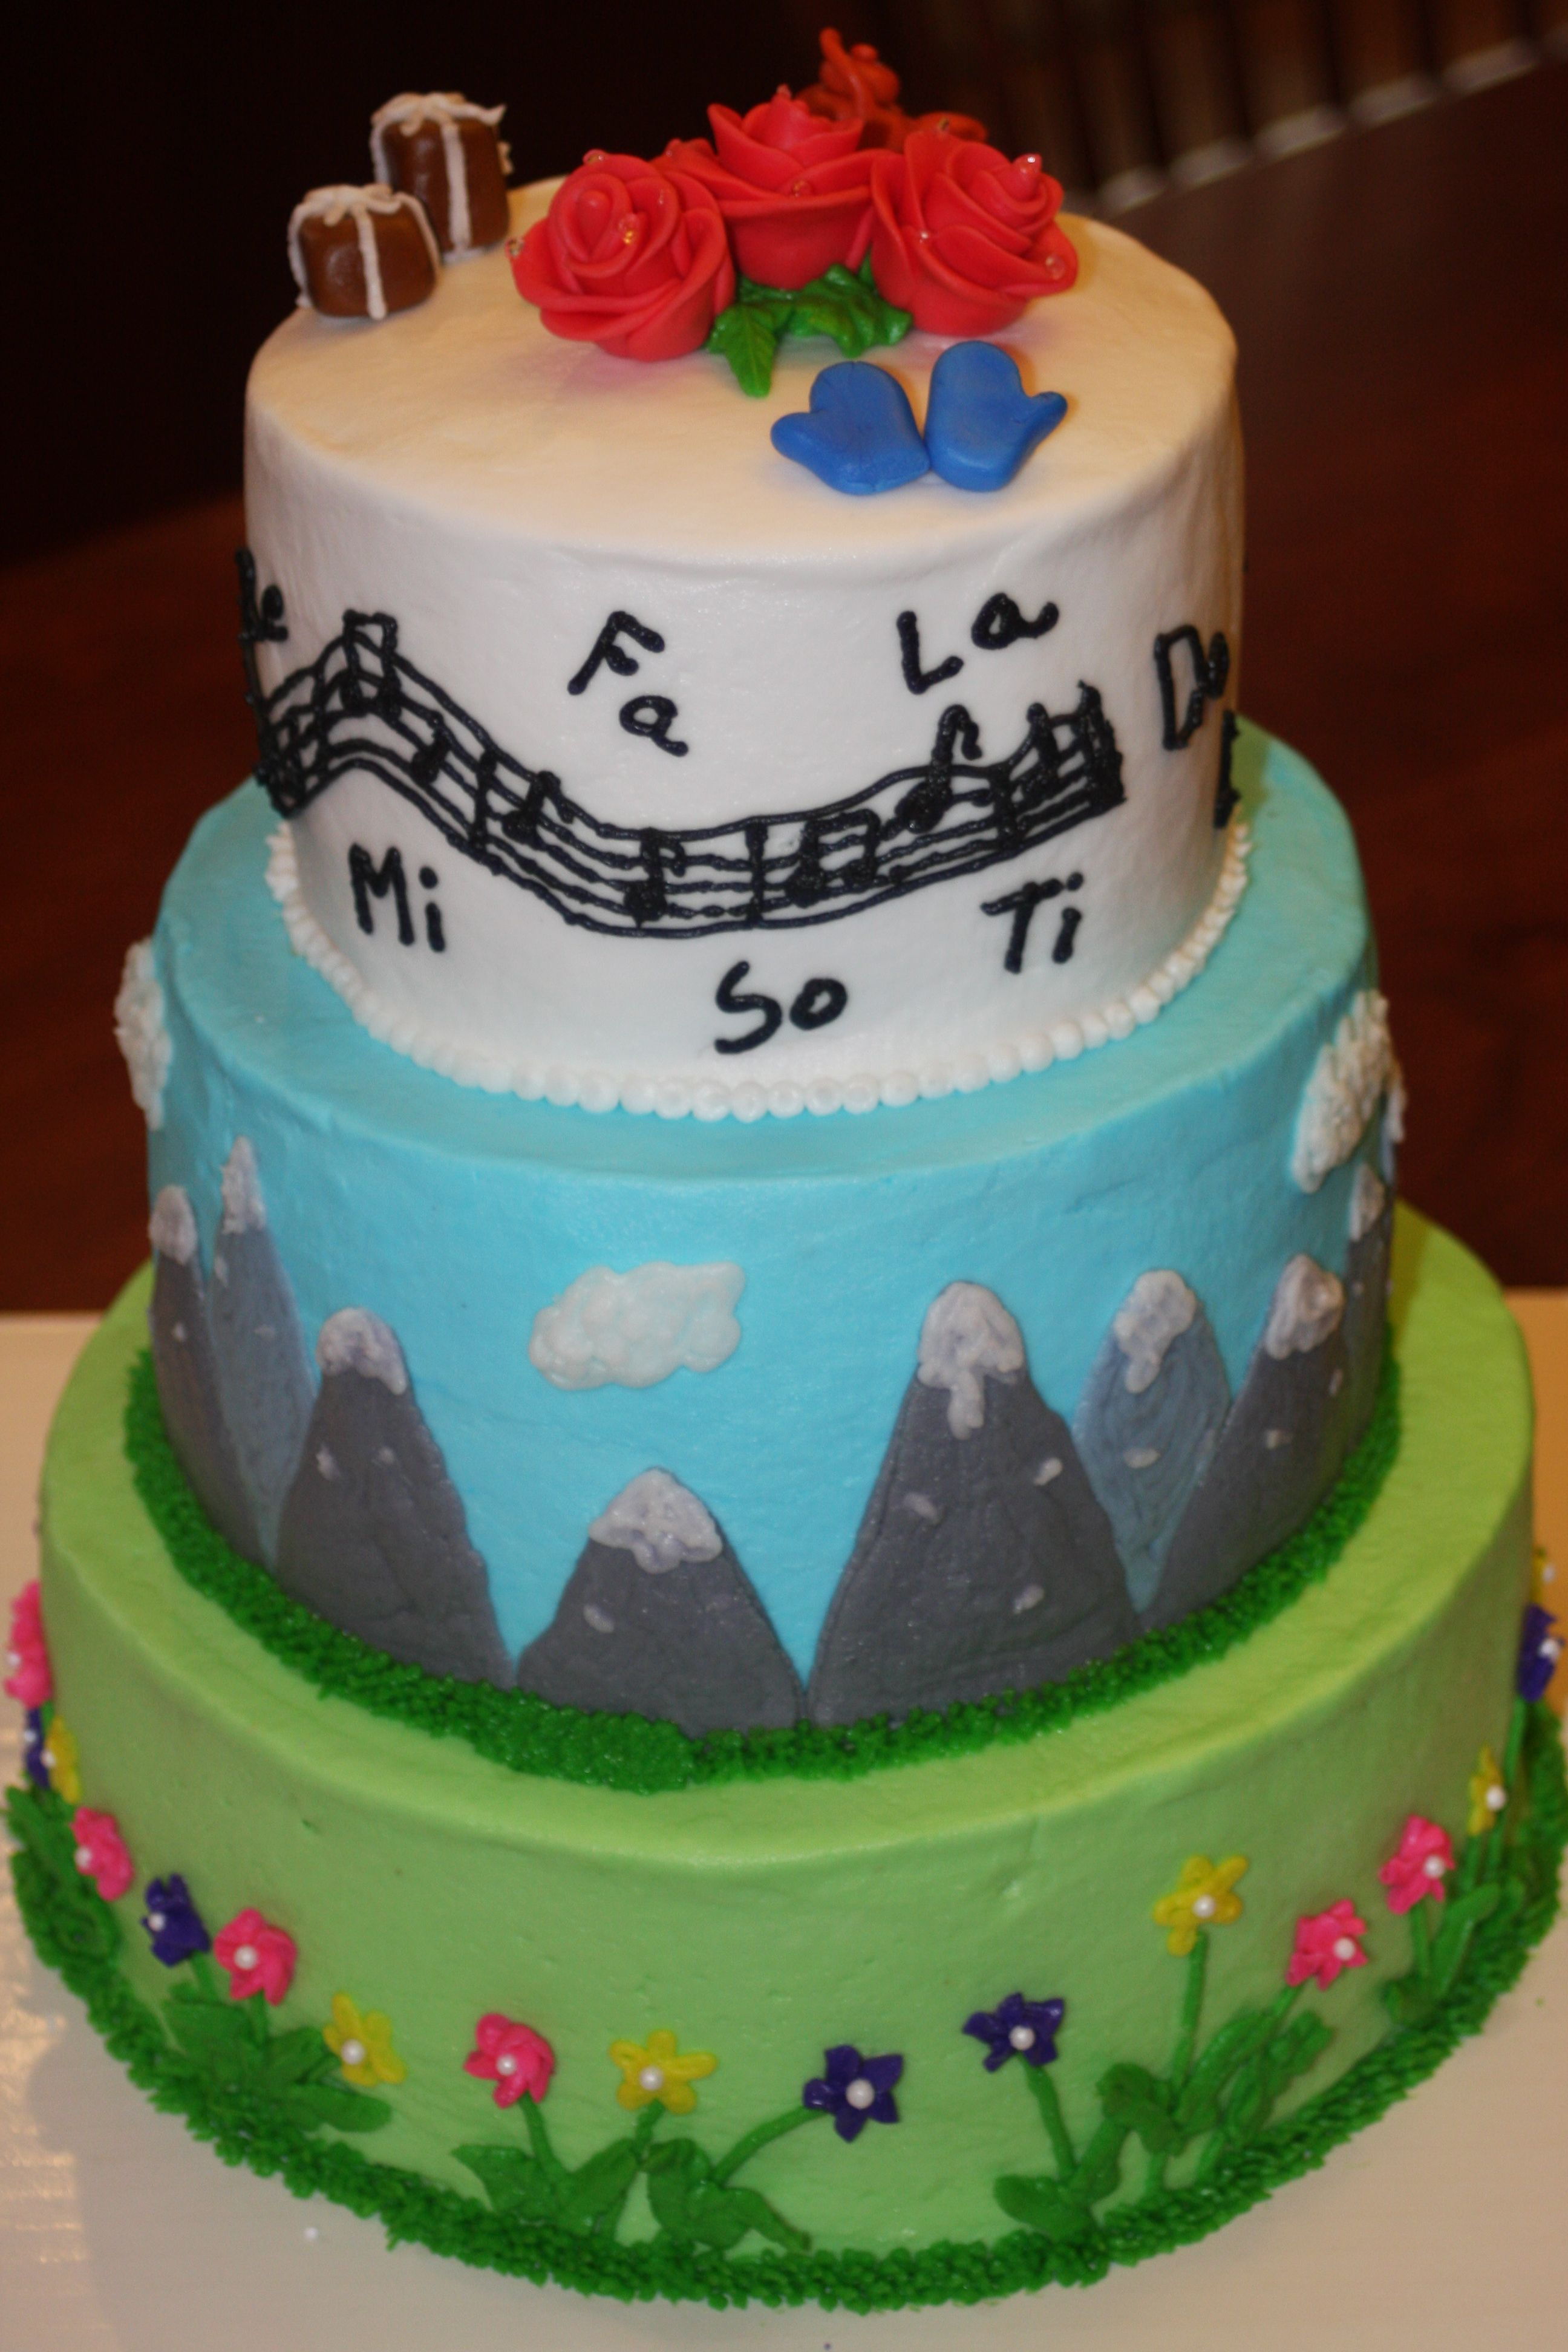 Music Themed Living Room Decor: The Sound Of Music Inspired Cake